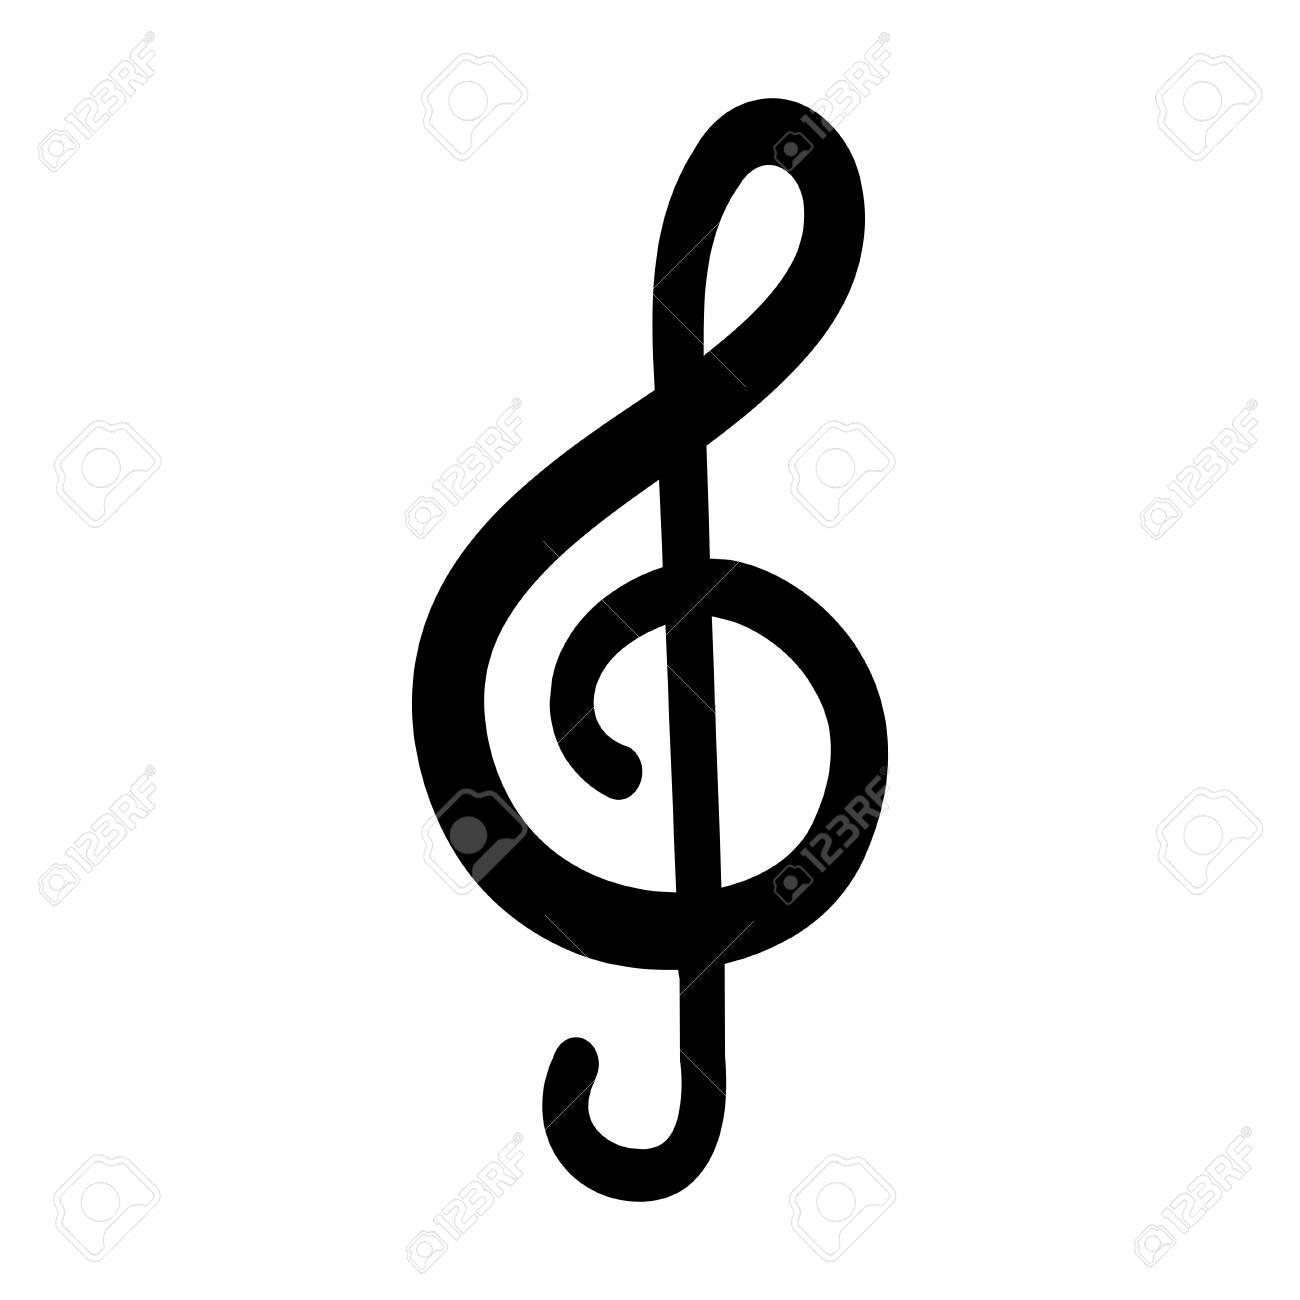 music keynote icon royalty free cliparts vectors and stock rh 123rf com vector music artist vector music notation